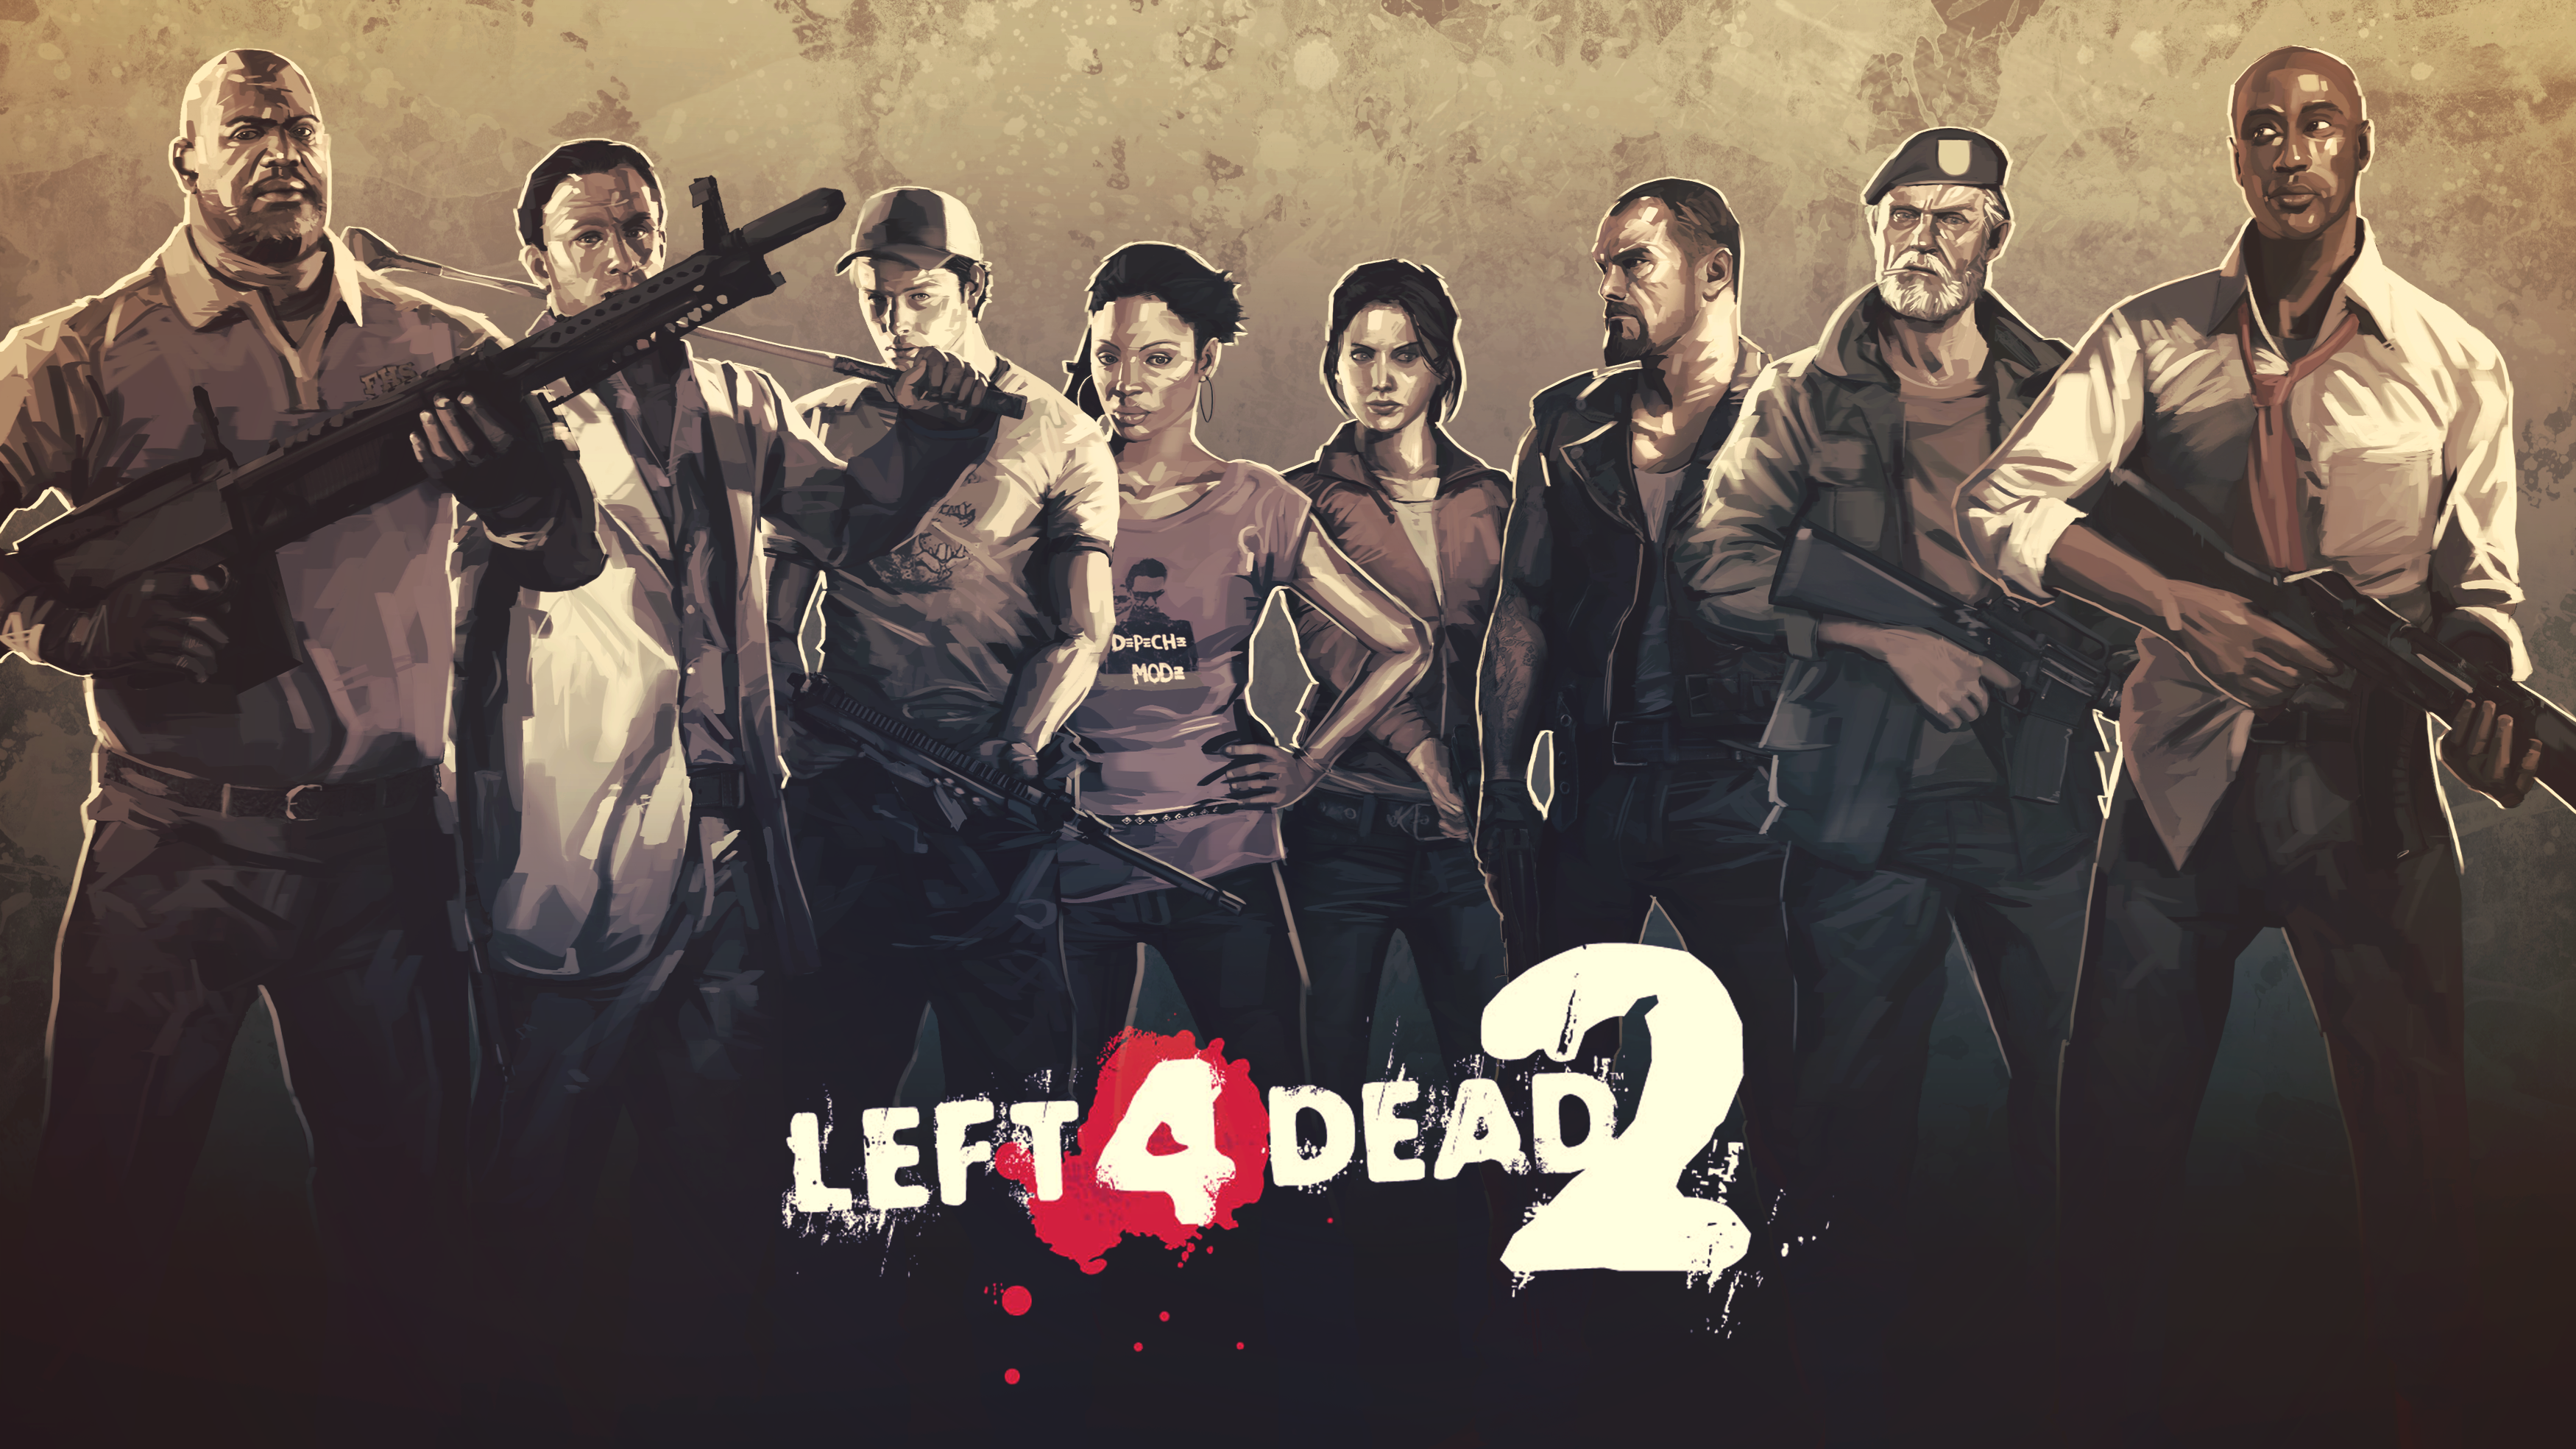 Left 4 Dead 2 telecharger gratuit de PC et Torrent